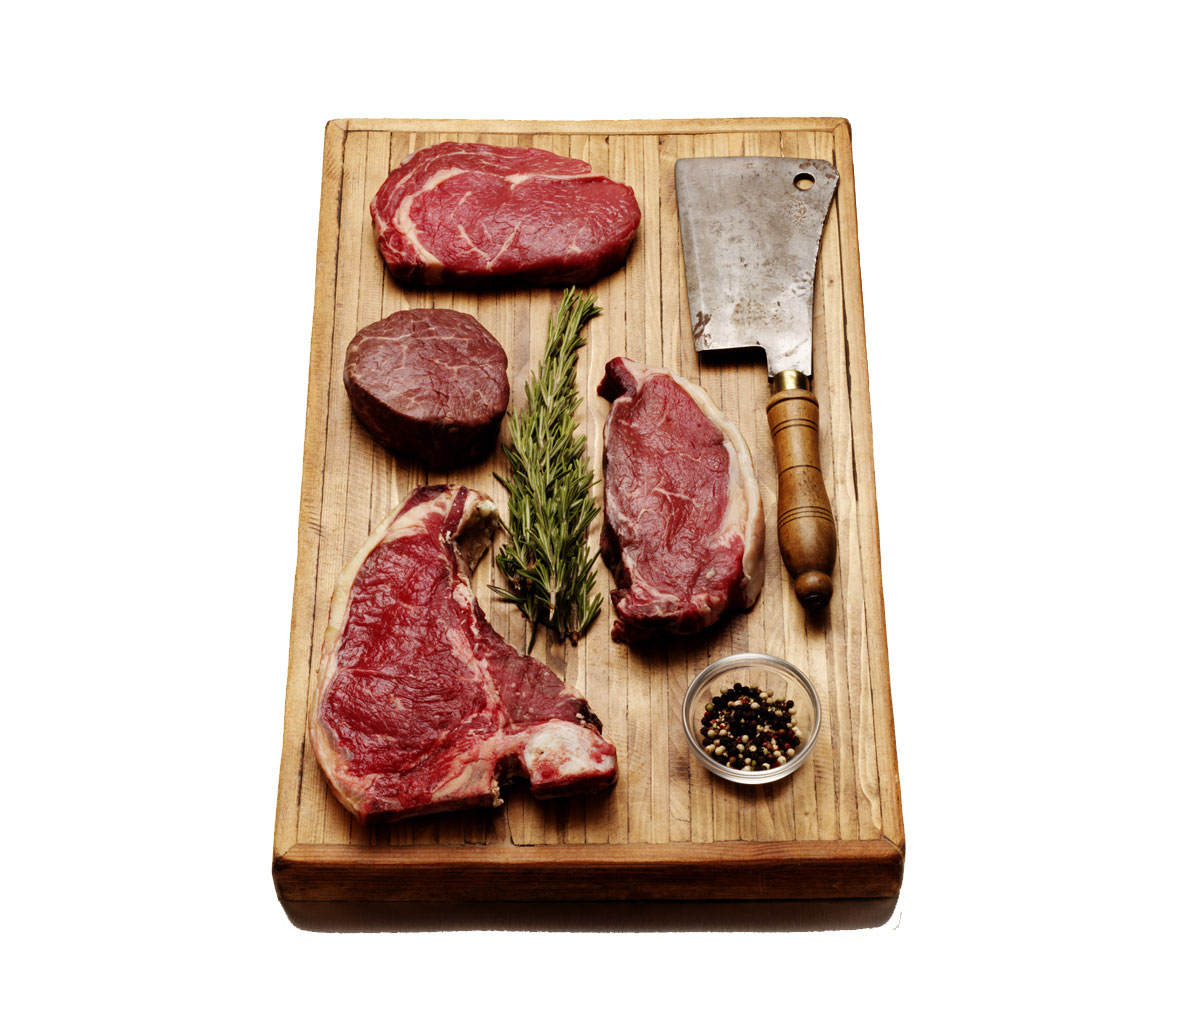 The 6 leanest cuts of meat